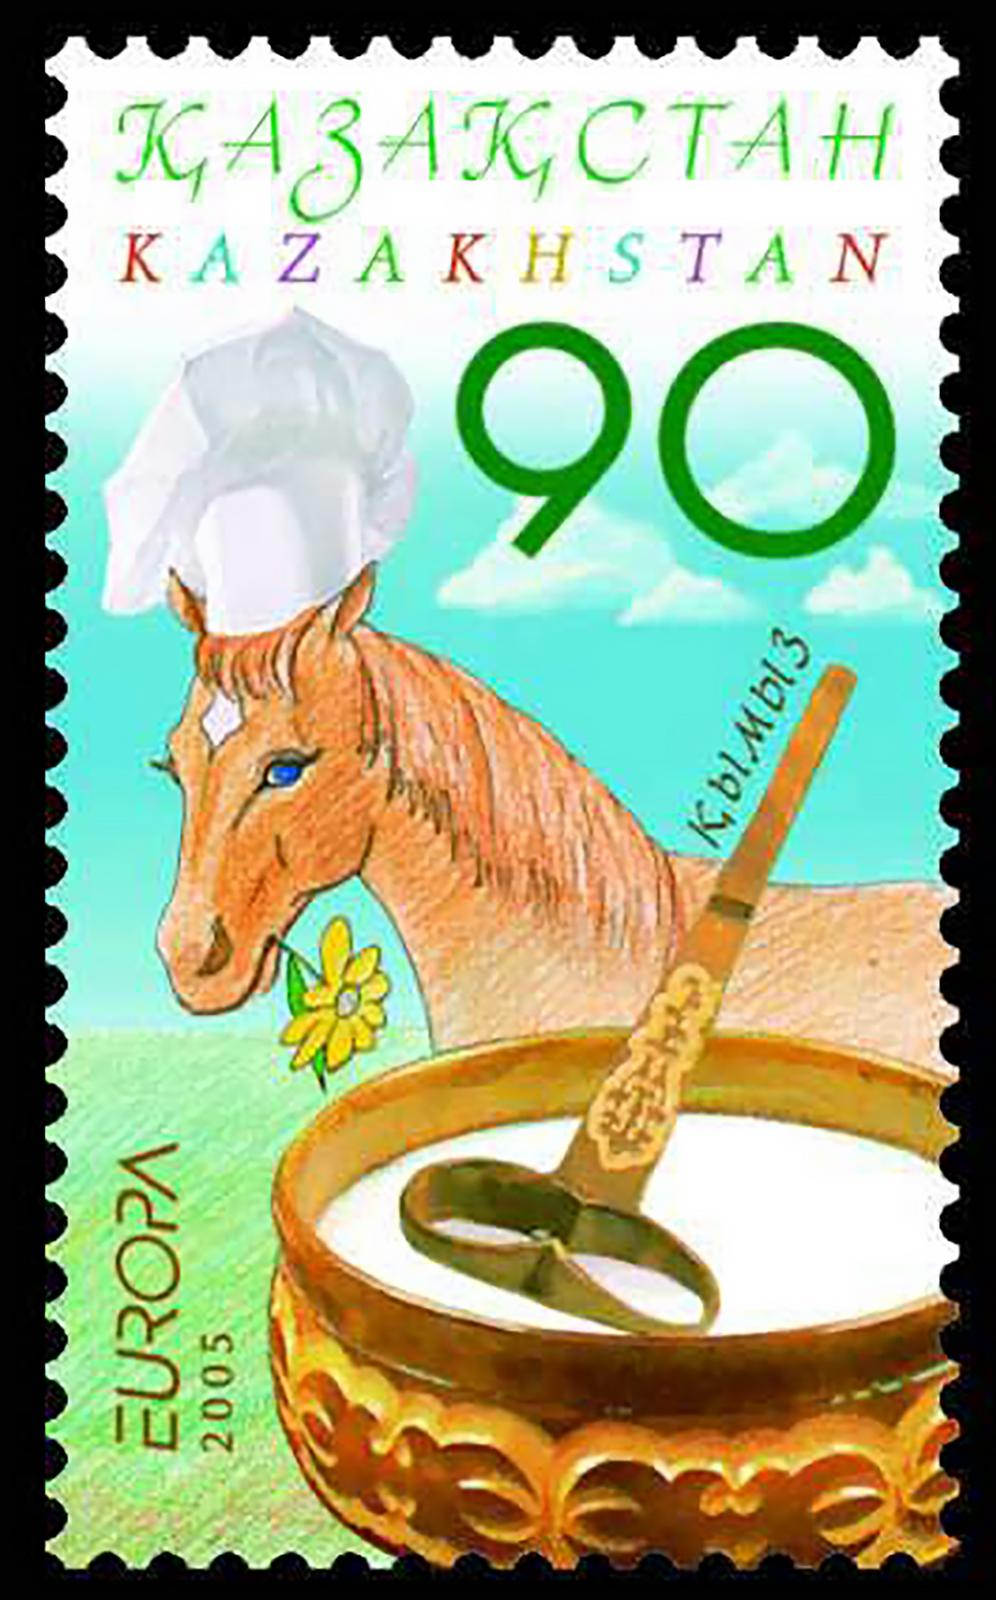 Kazakh postage stamp in tribute to koumiss, a fermented dairy drink